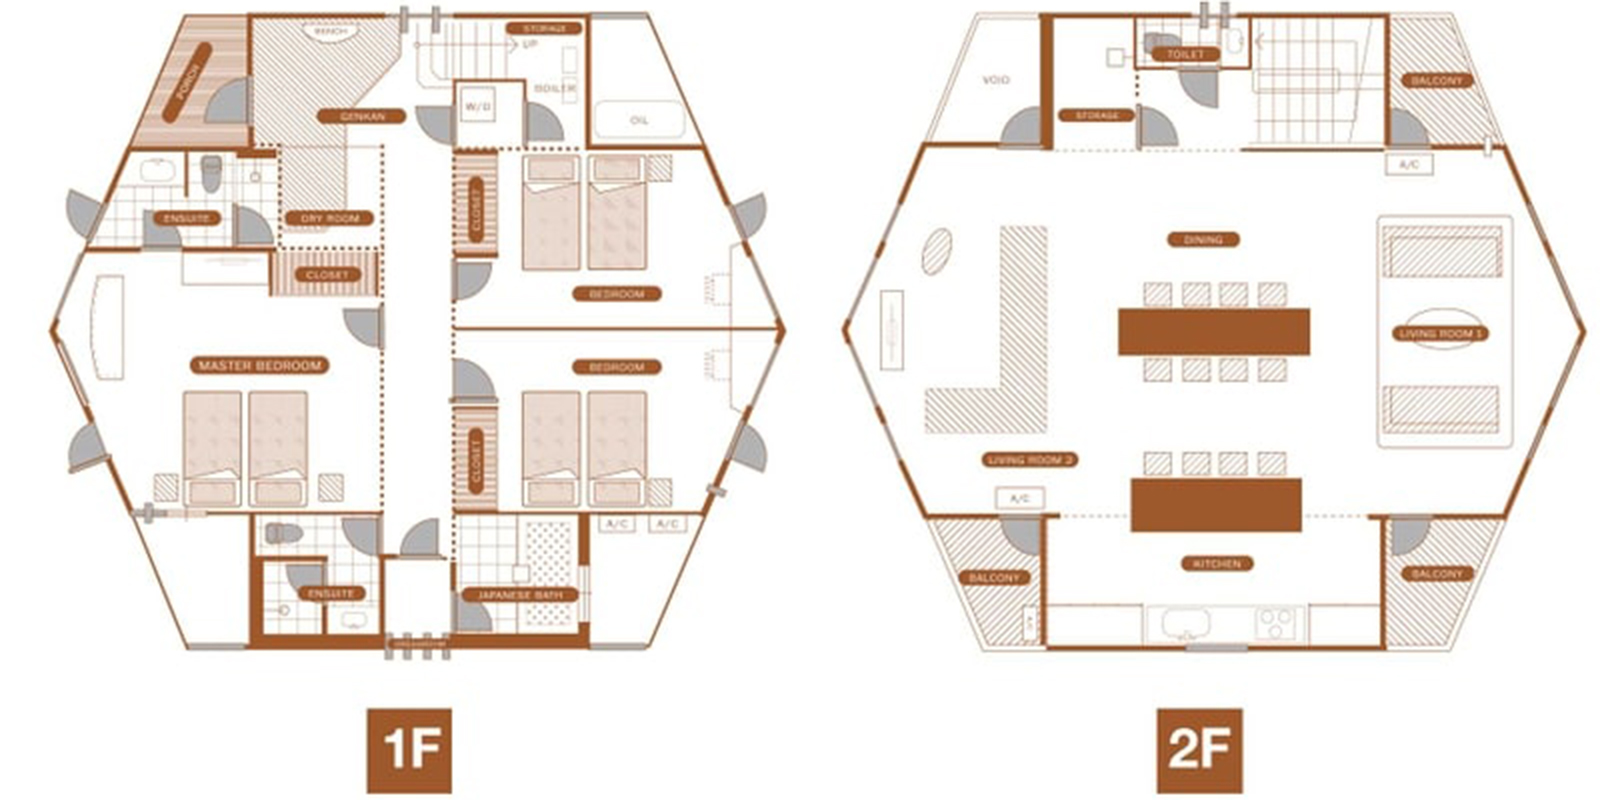 The Orchards Niseko Hinoki Floor Plan | St Moritz, Niseko